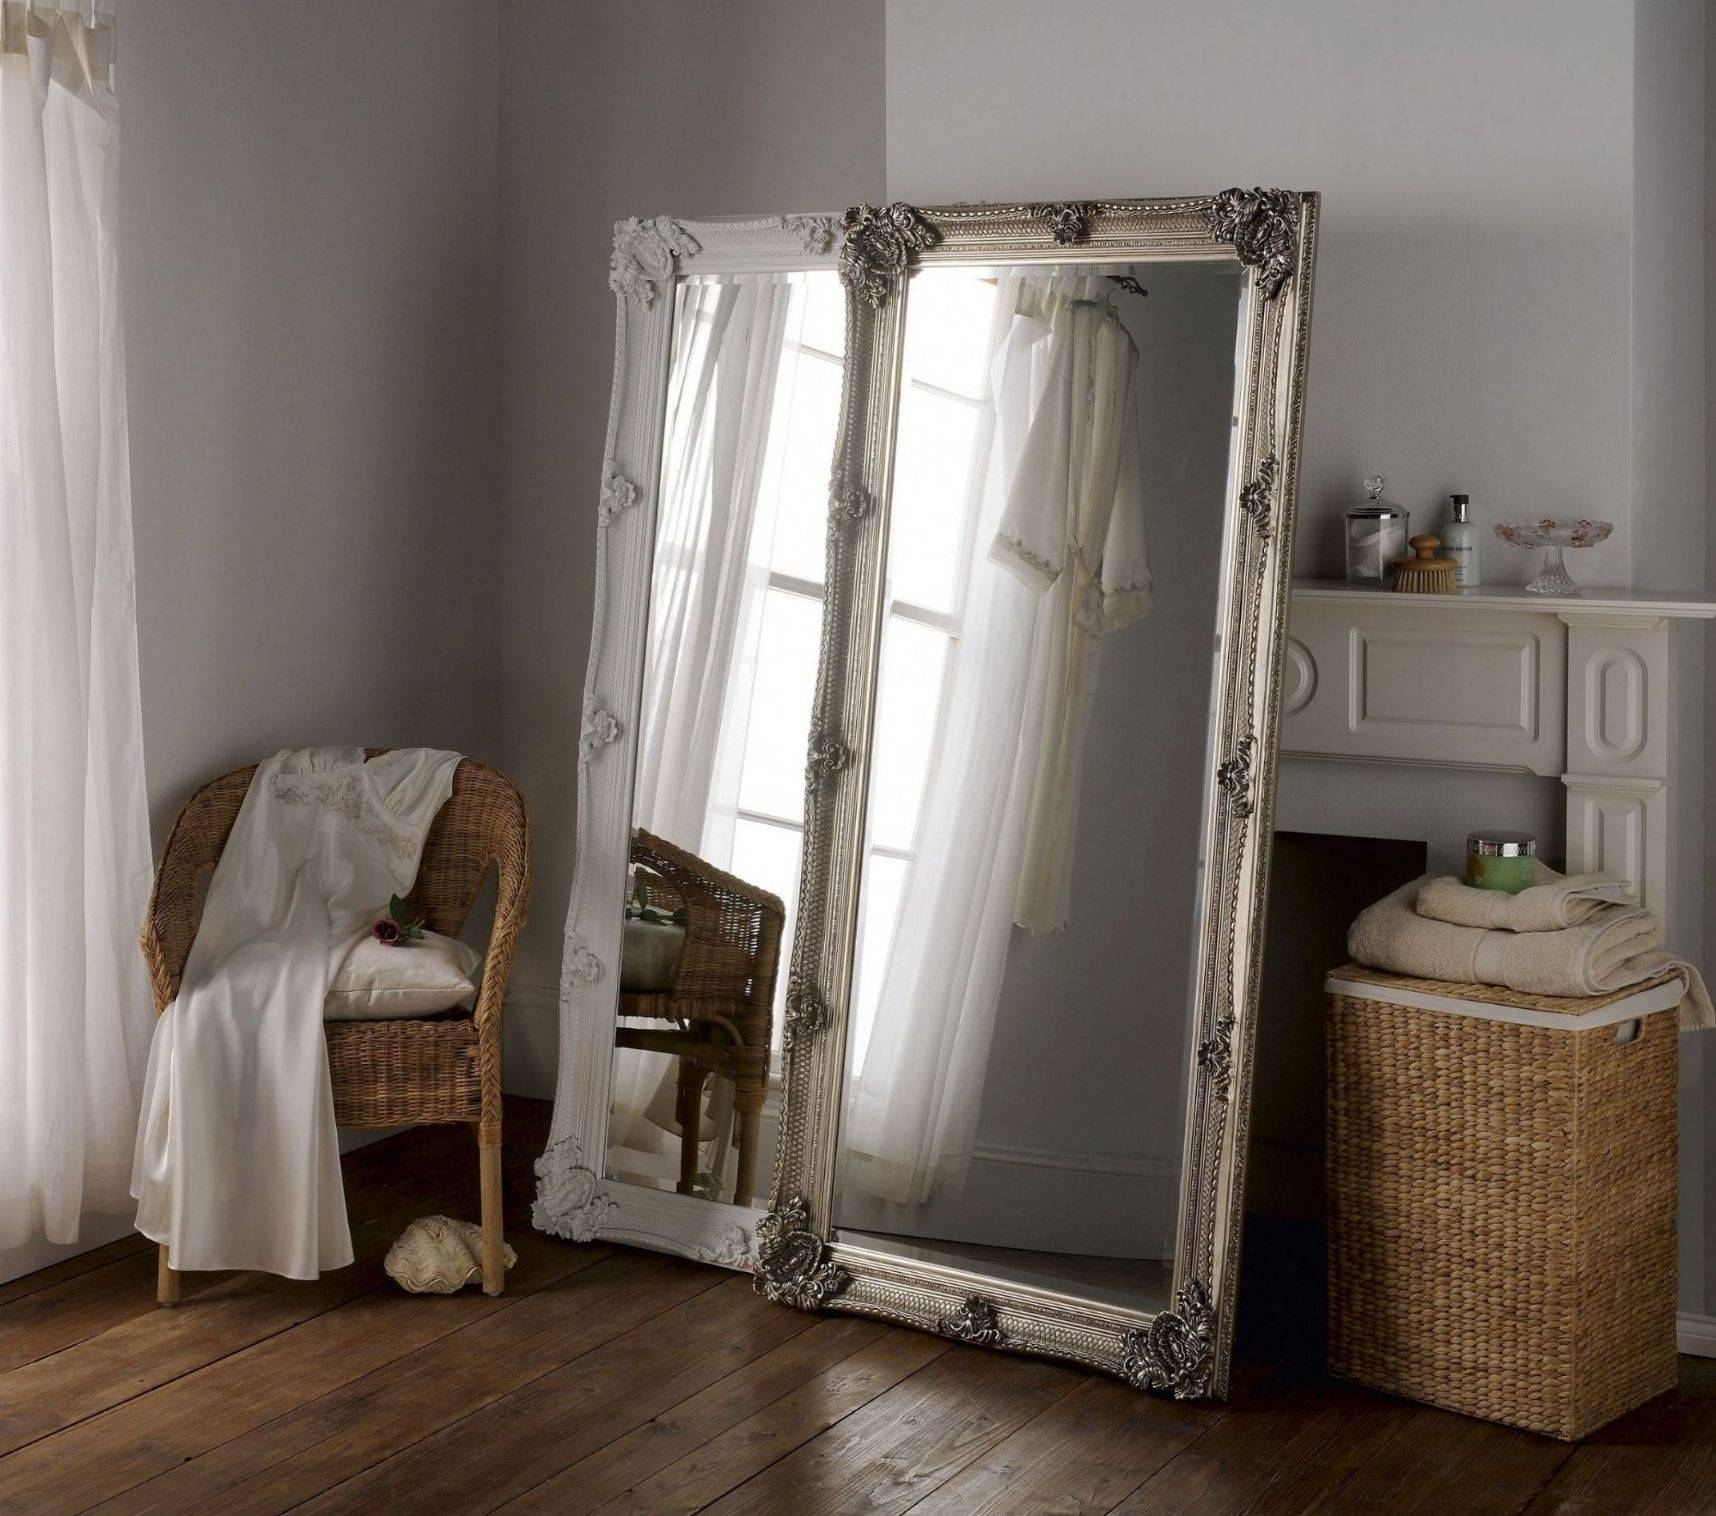 Large Leaning Wall Mirror | Vanity Decoration within Oversized Mirrors (Image 10 of 15)